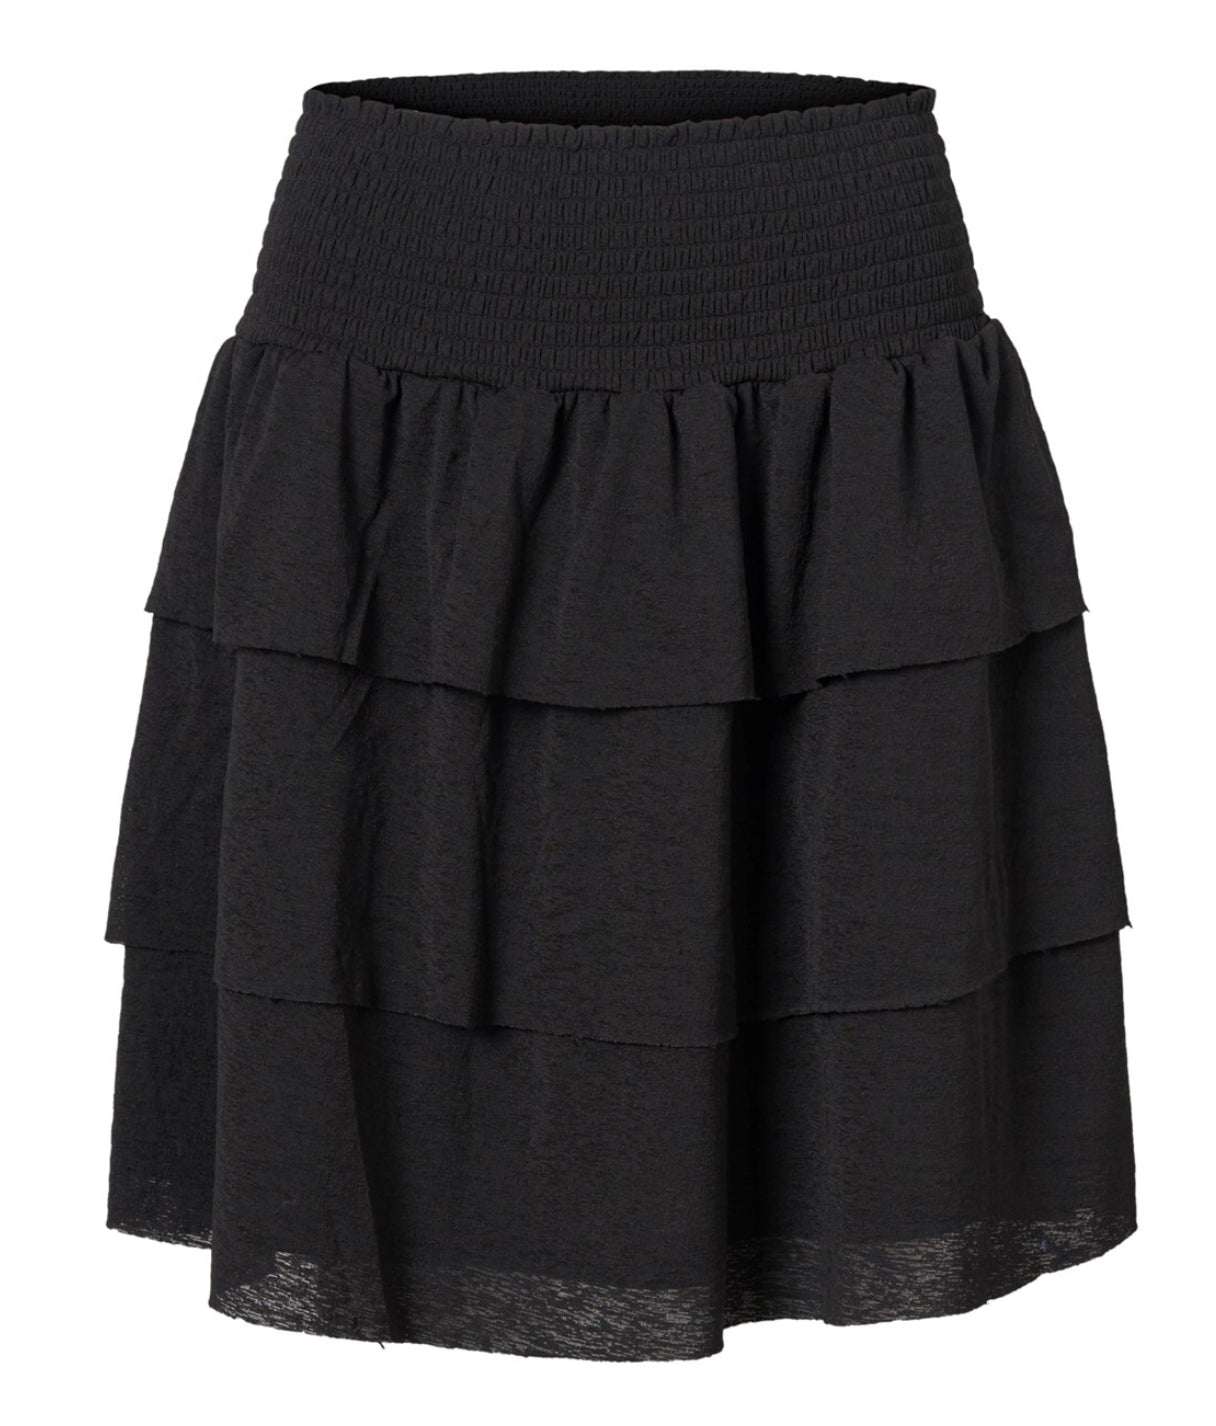 Bessie short skirt